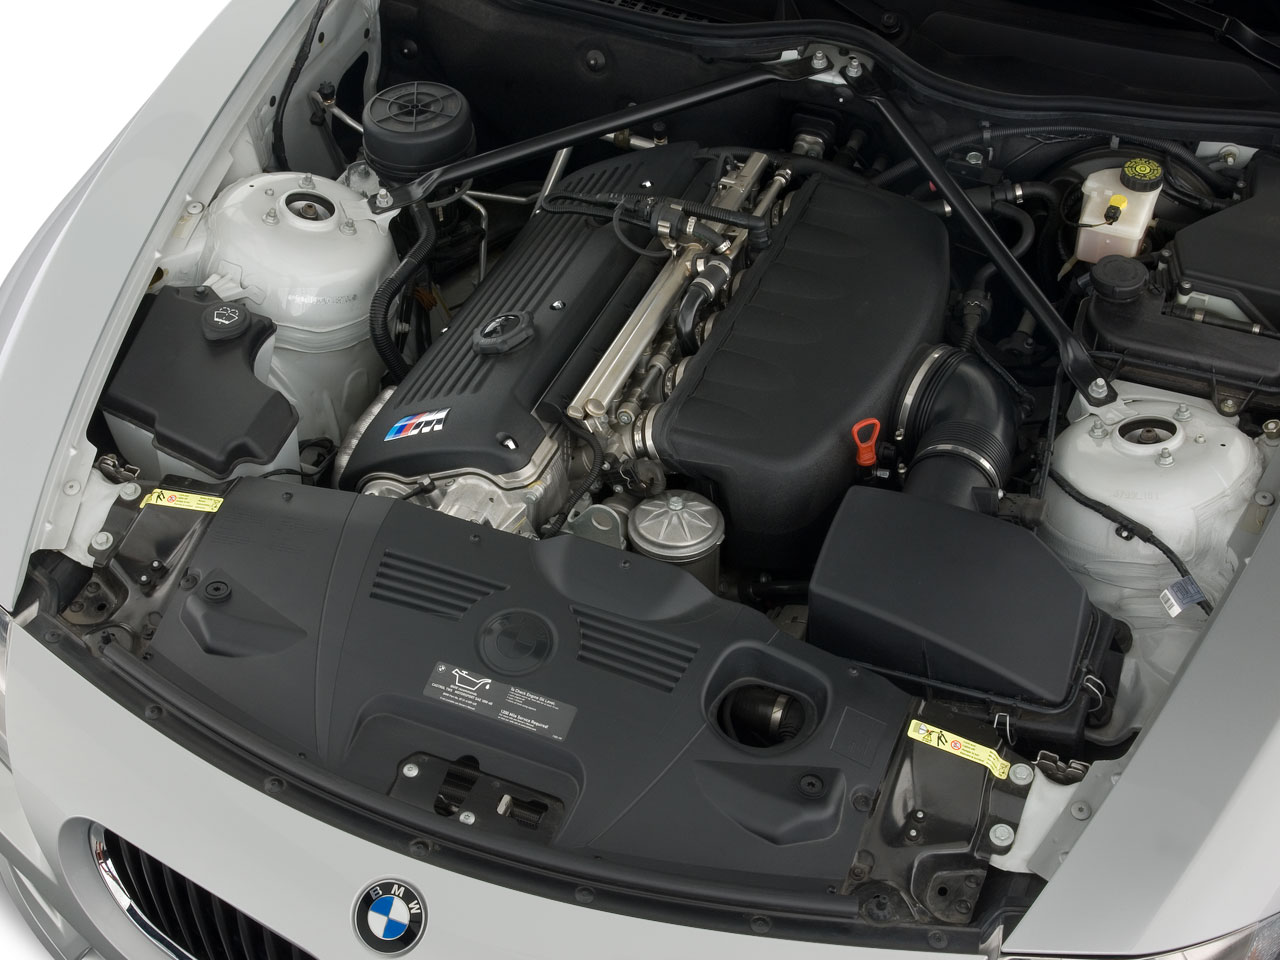 2008 bmw z4 coupe - bmw sports coupe review - automobile magazine